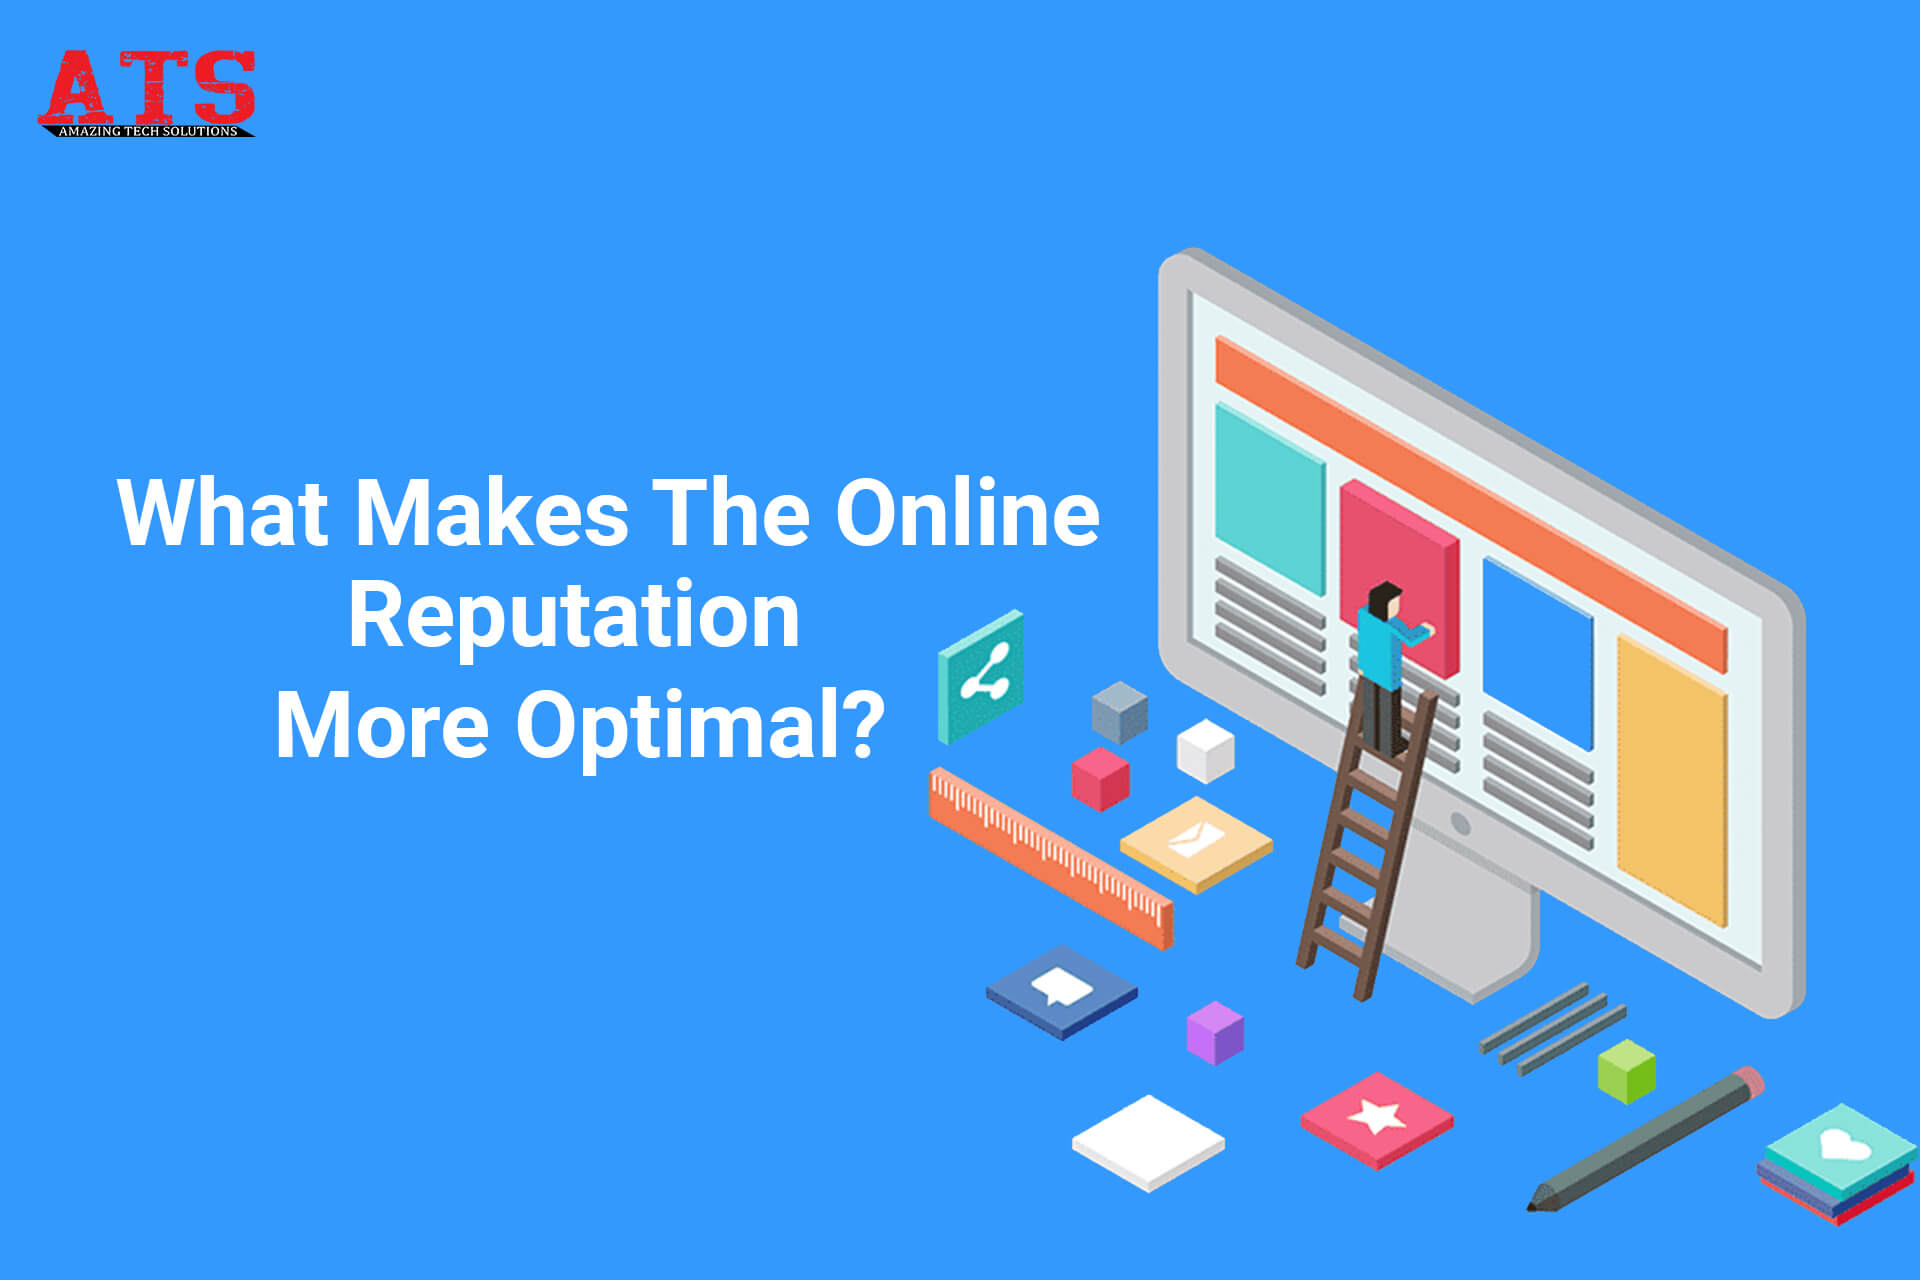 What Makes The Online Reputation More Optimal